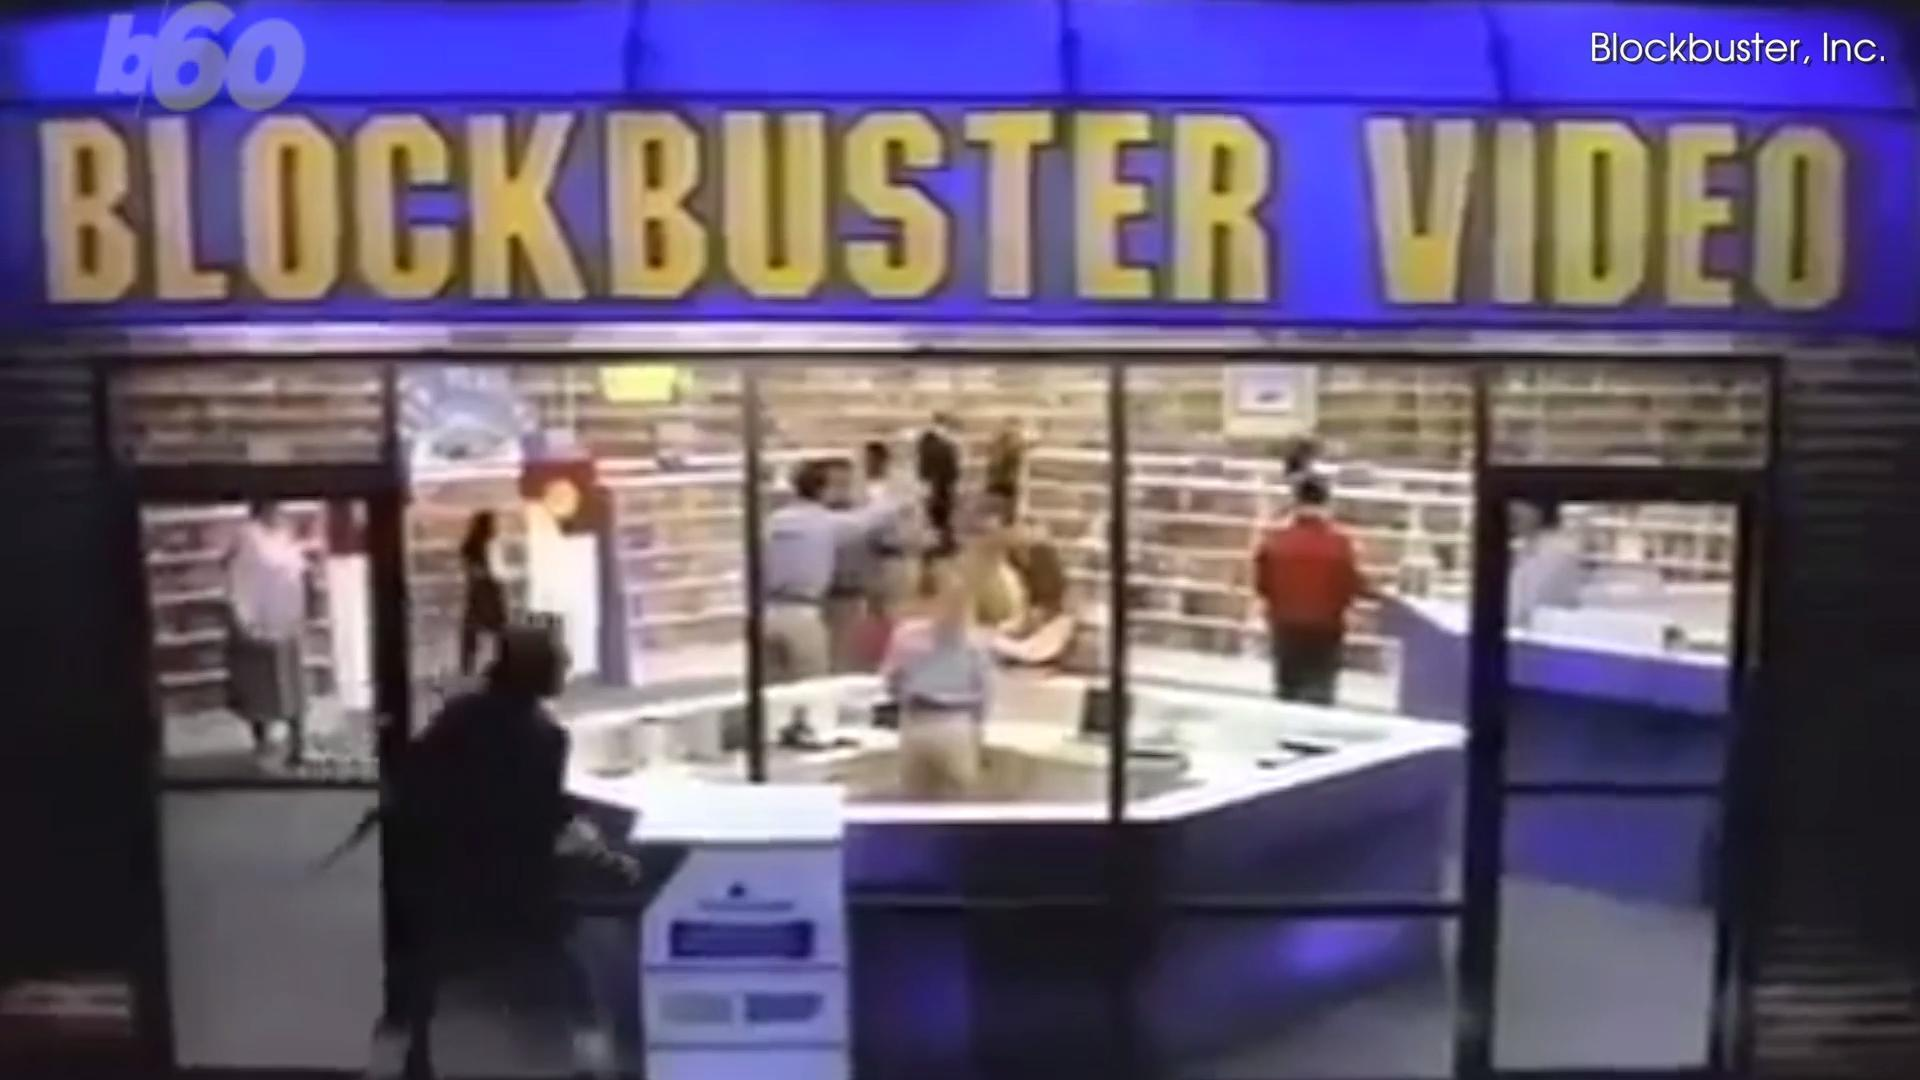 This is the One State Where Blockbuster Is Still Very Popular